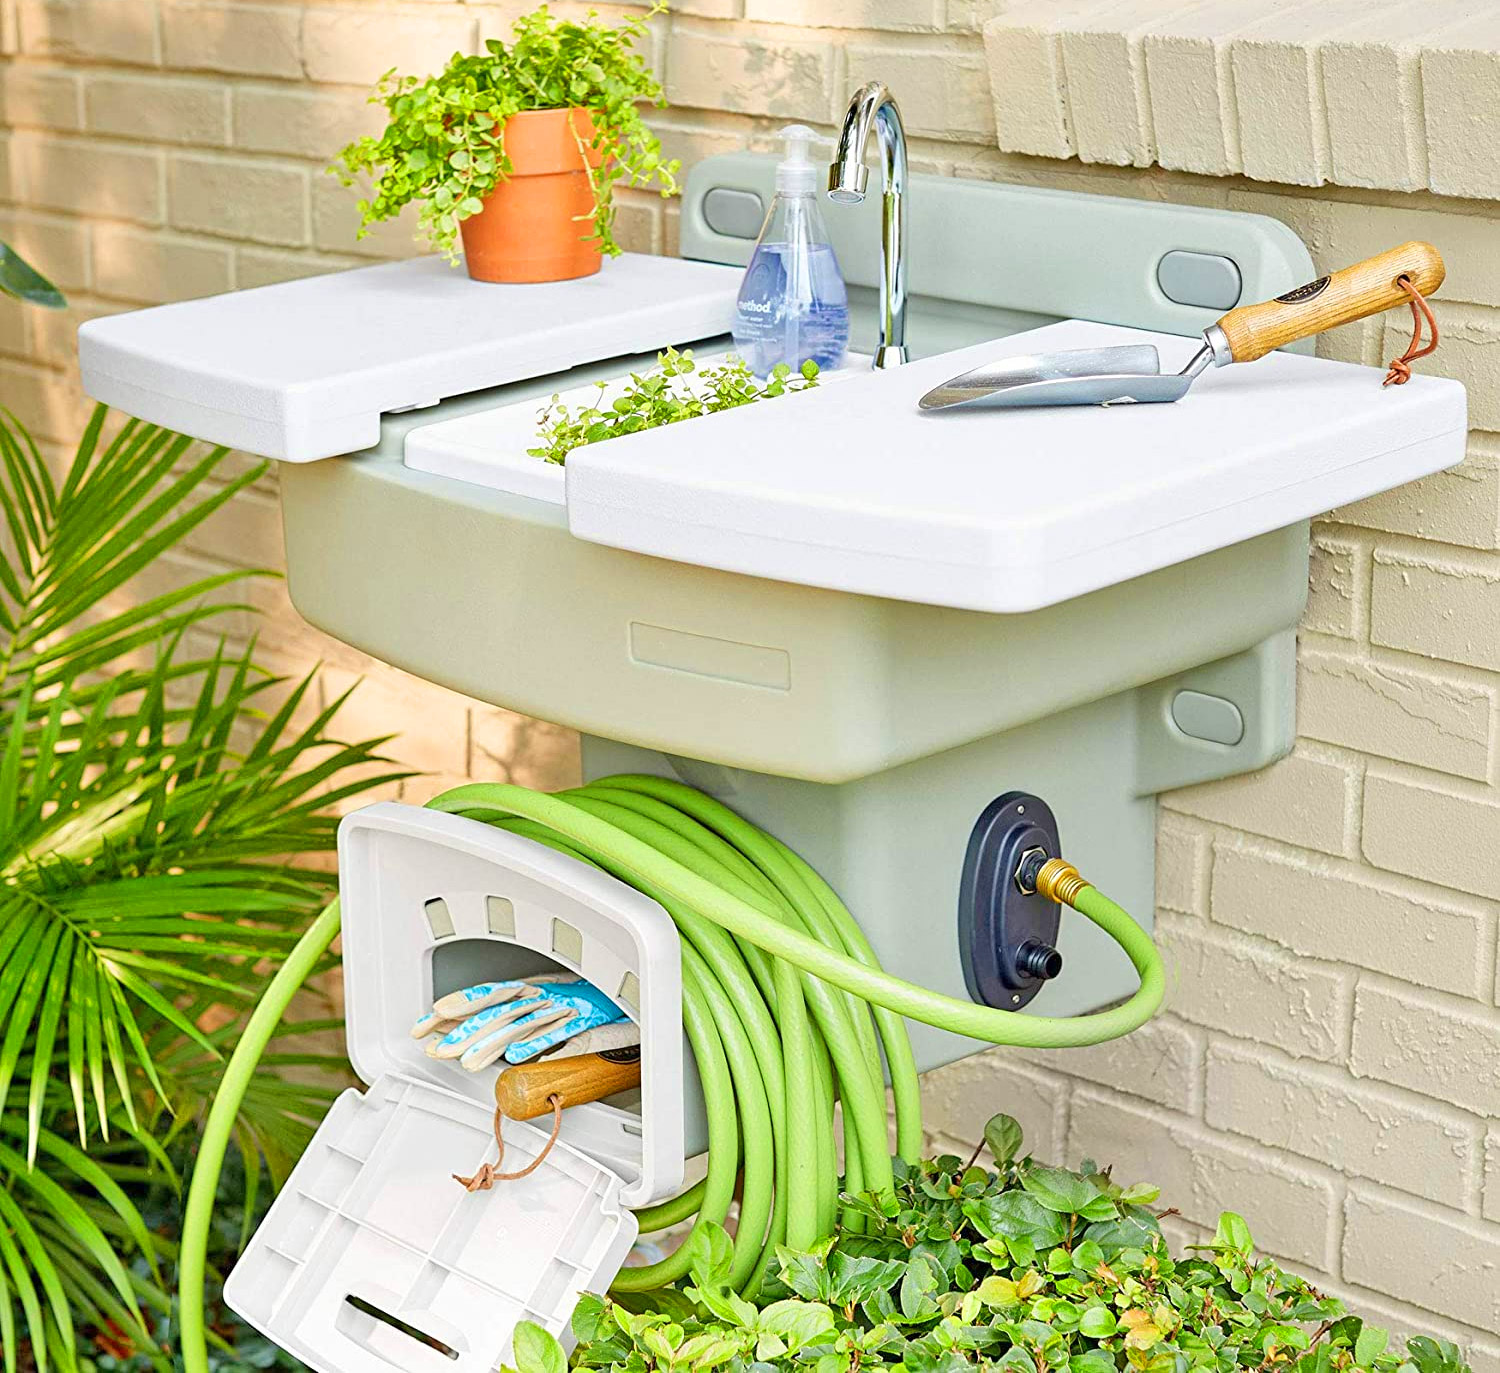 This Garden Hose Sink Gives You an Instant Outdoor Sink